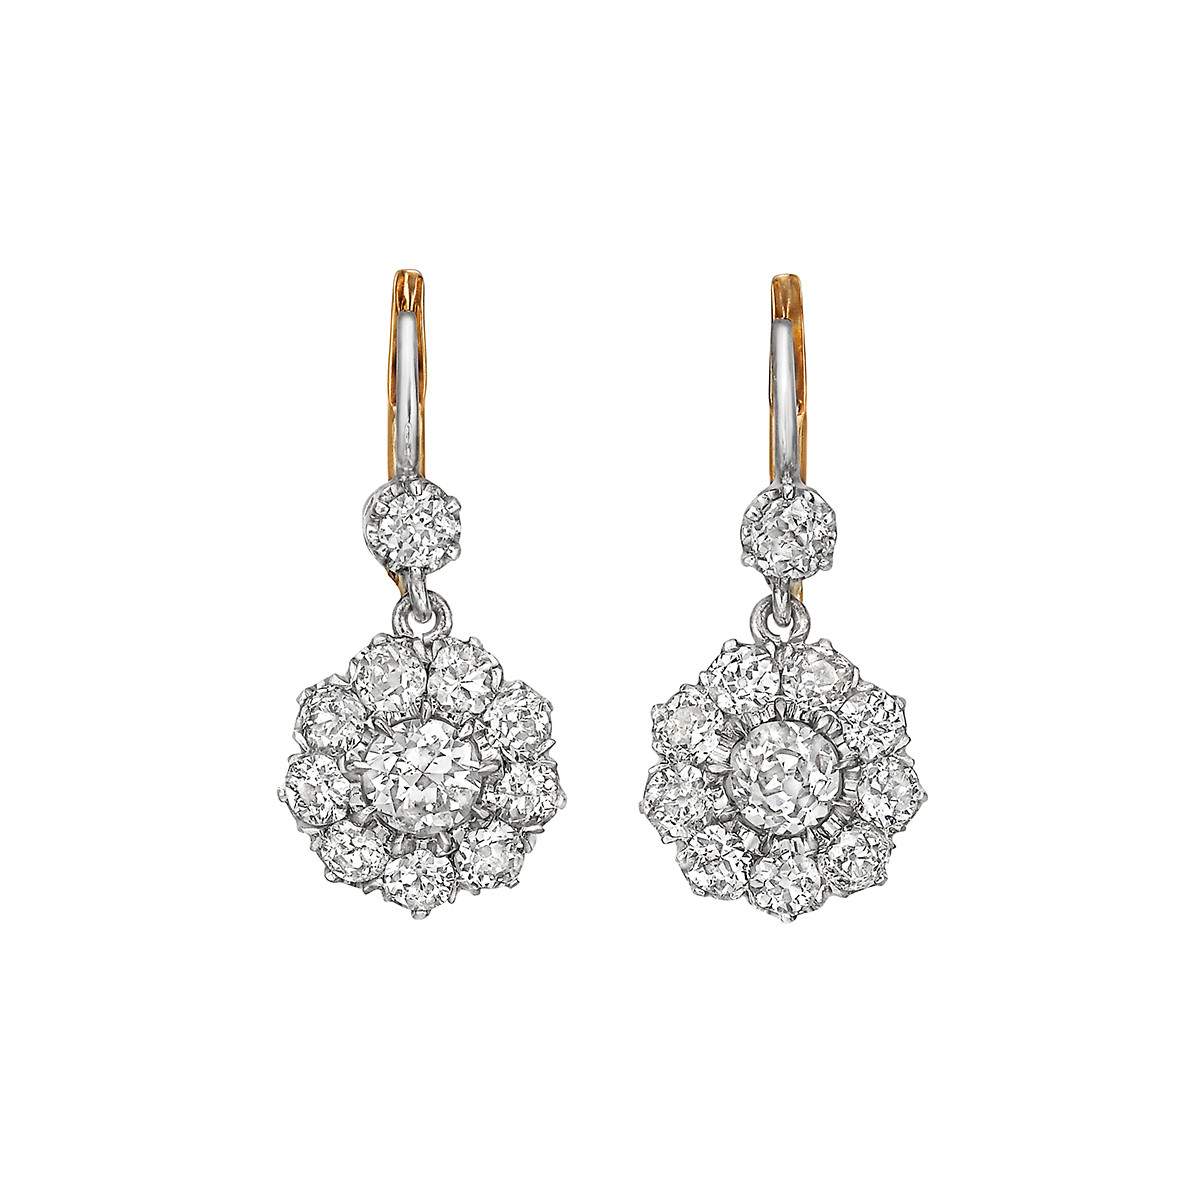 Diamond Floret Cer Drop Earrings Set With Twenty Two Old Mine Cut Diamonds Weighing Roximately 3 00 Total Carats In Platinum